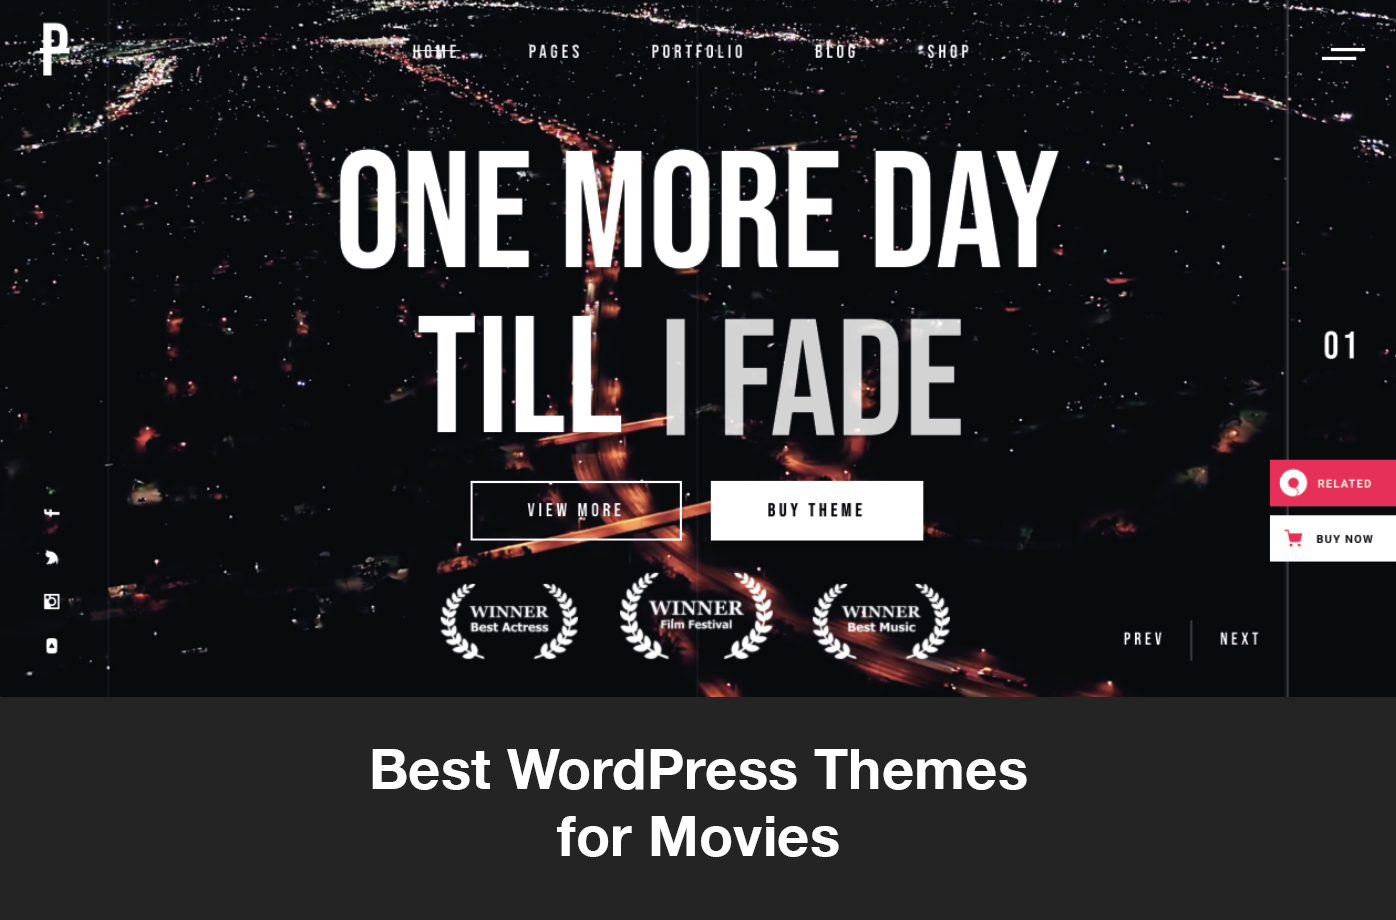 Best WordPress Themes for Movies